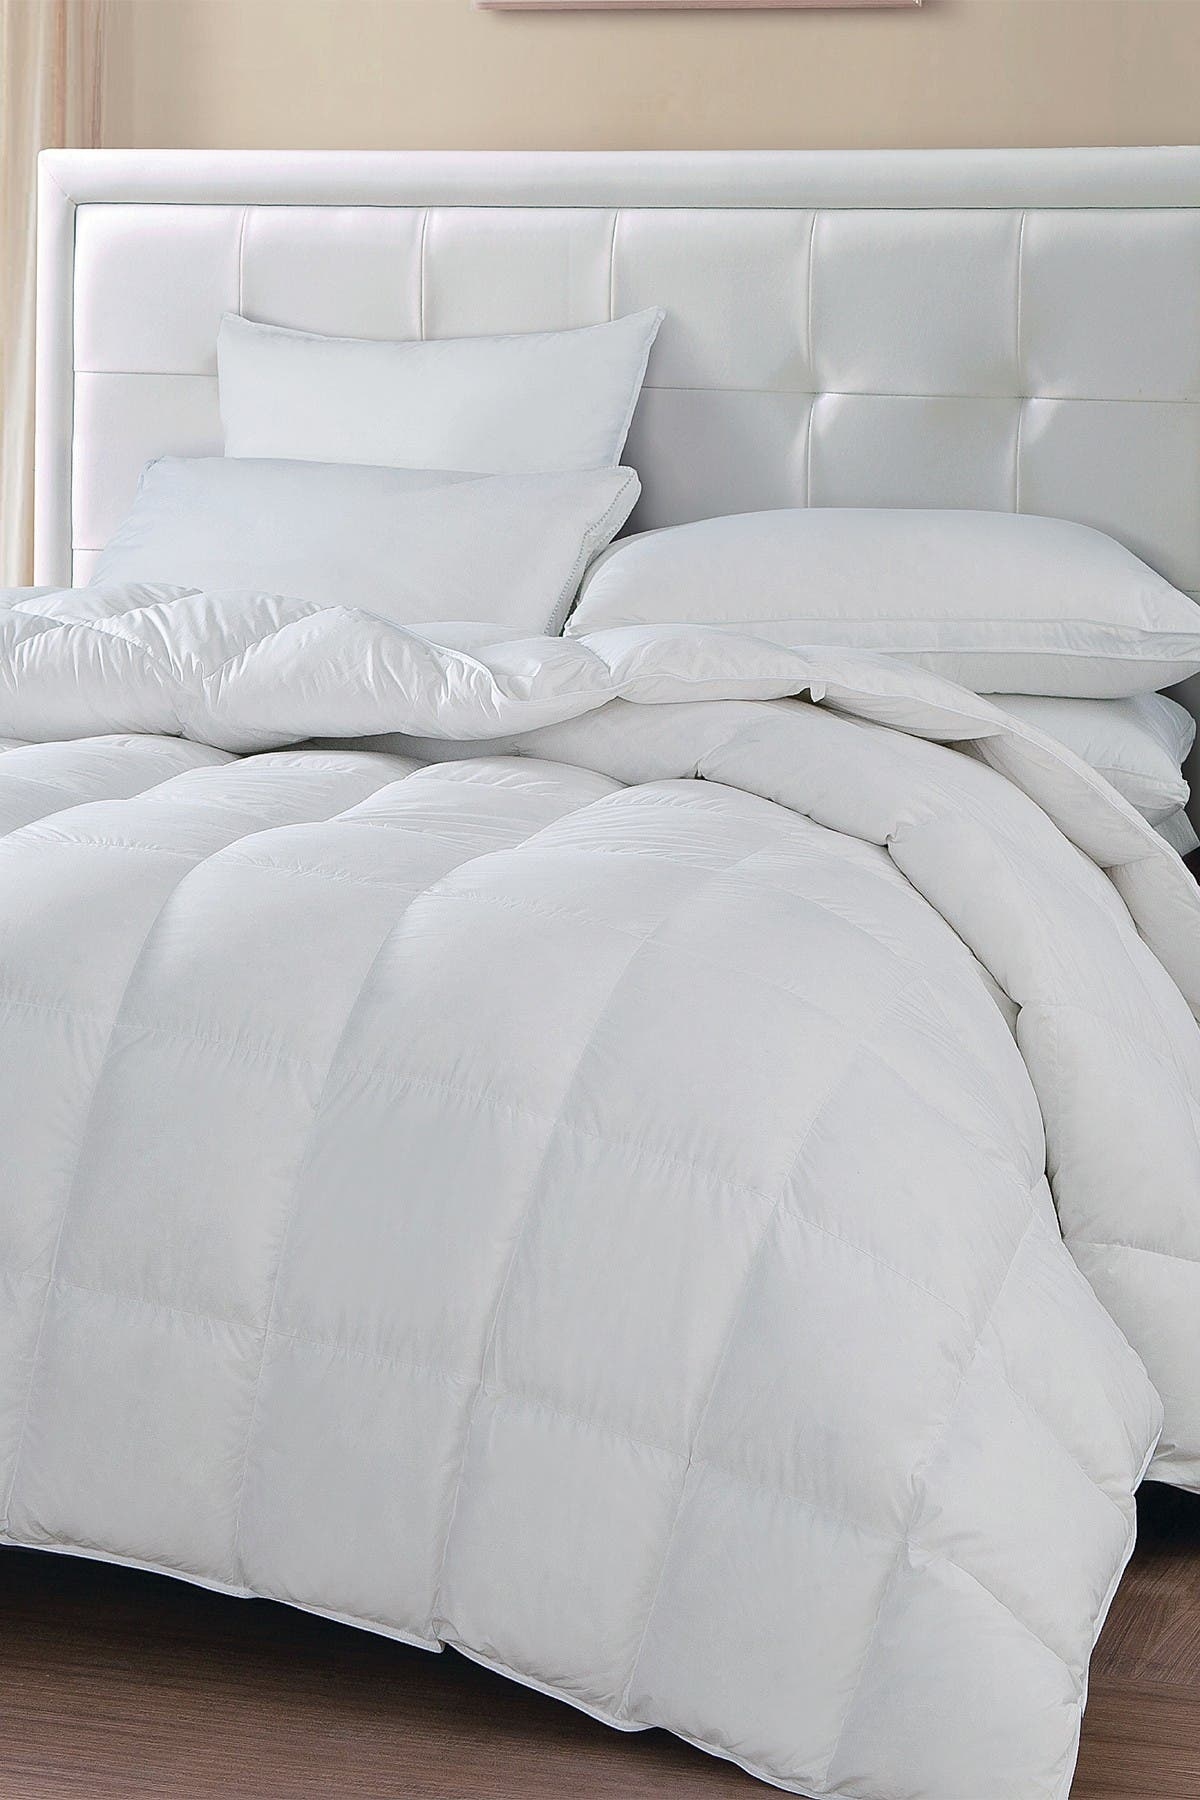 Image of Blue Ridge Home Fashions Oslo Medium Wamth White Goose Down & Feather Comforter - Full/Queen - White